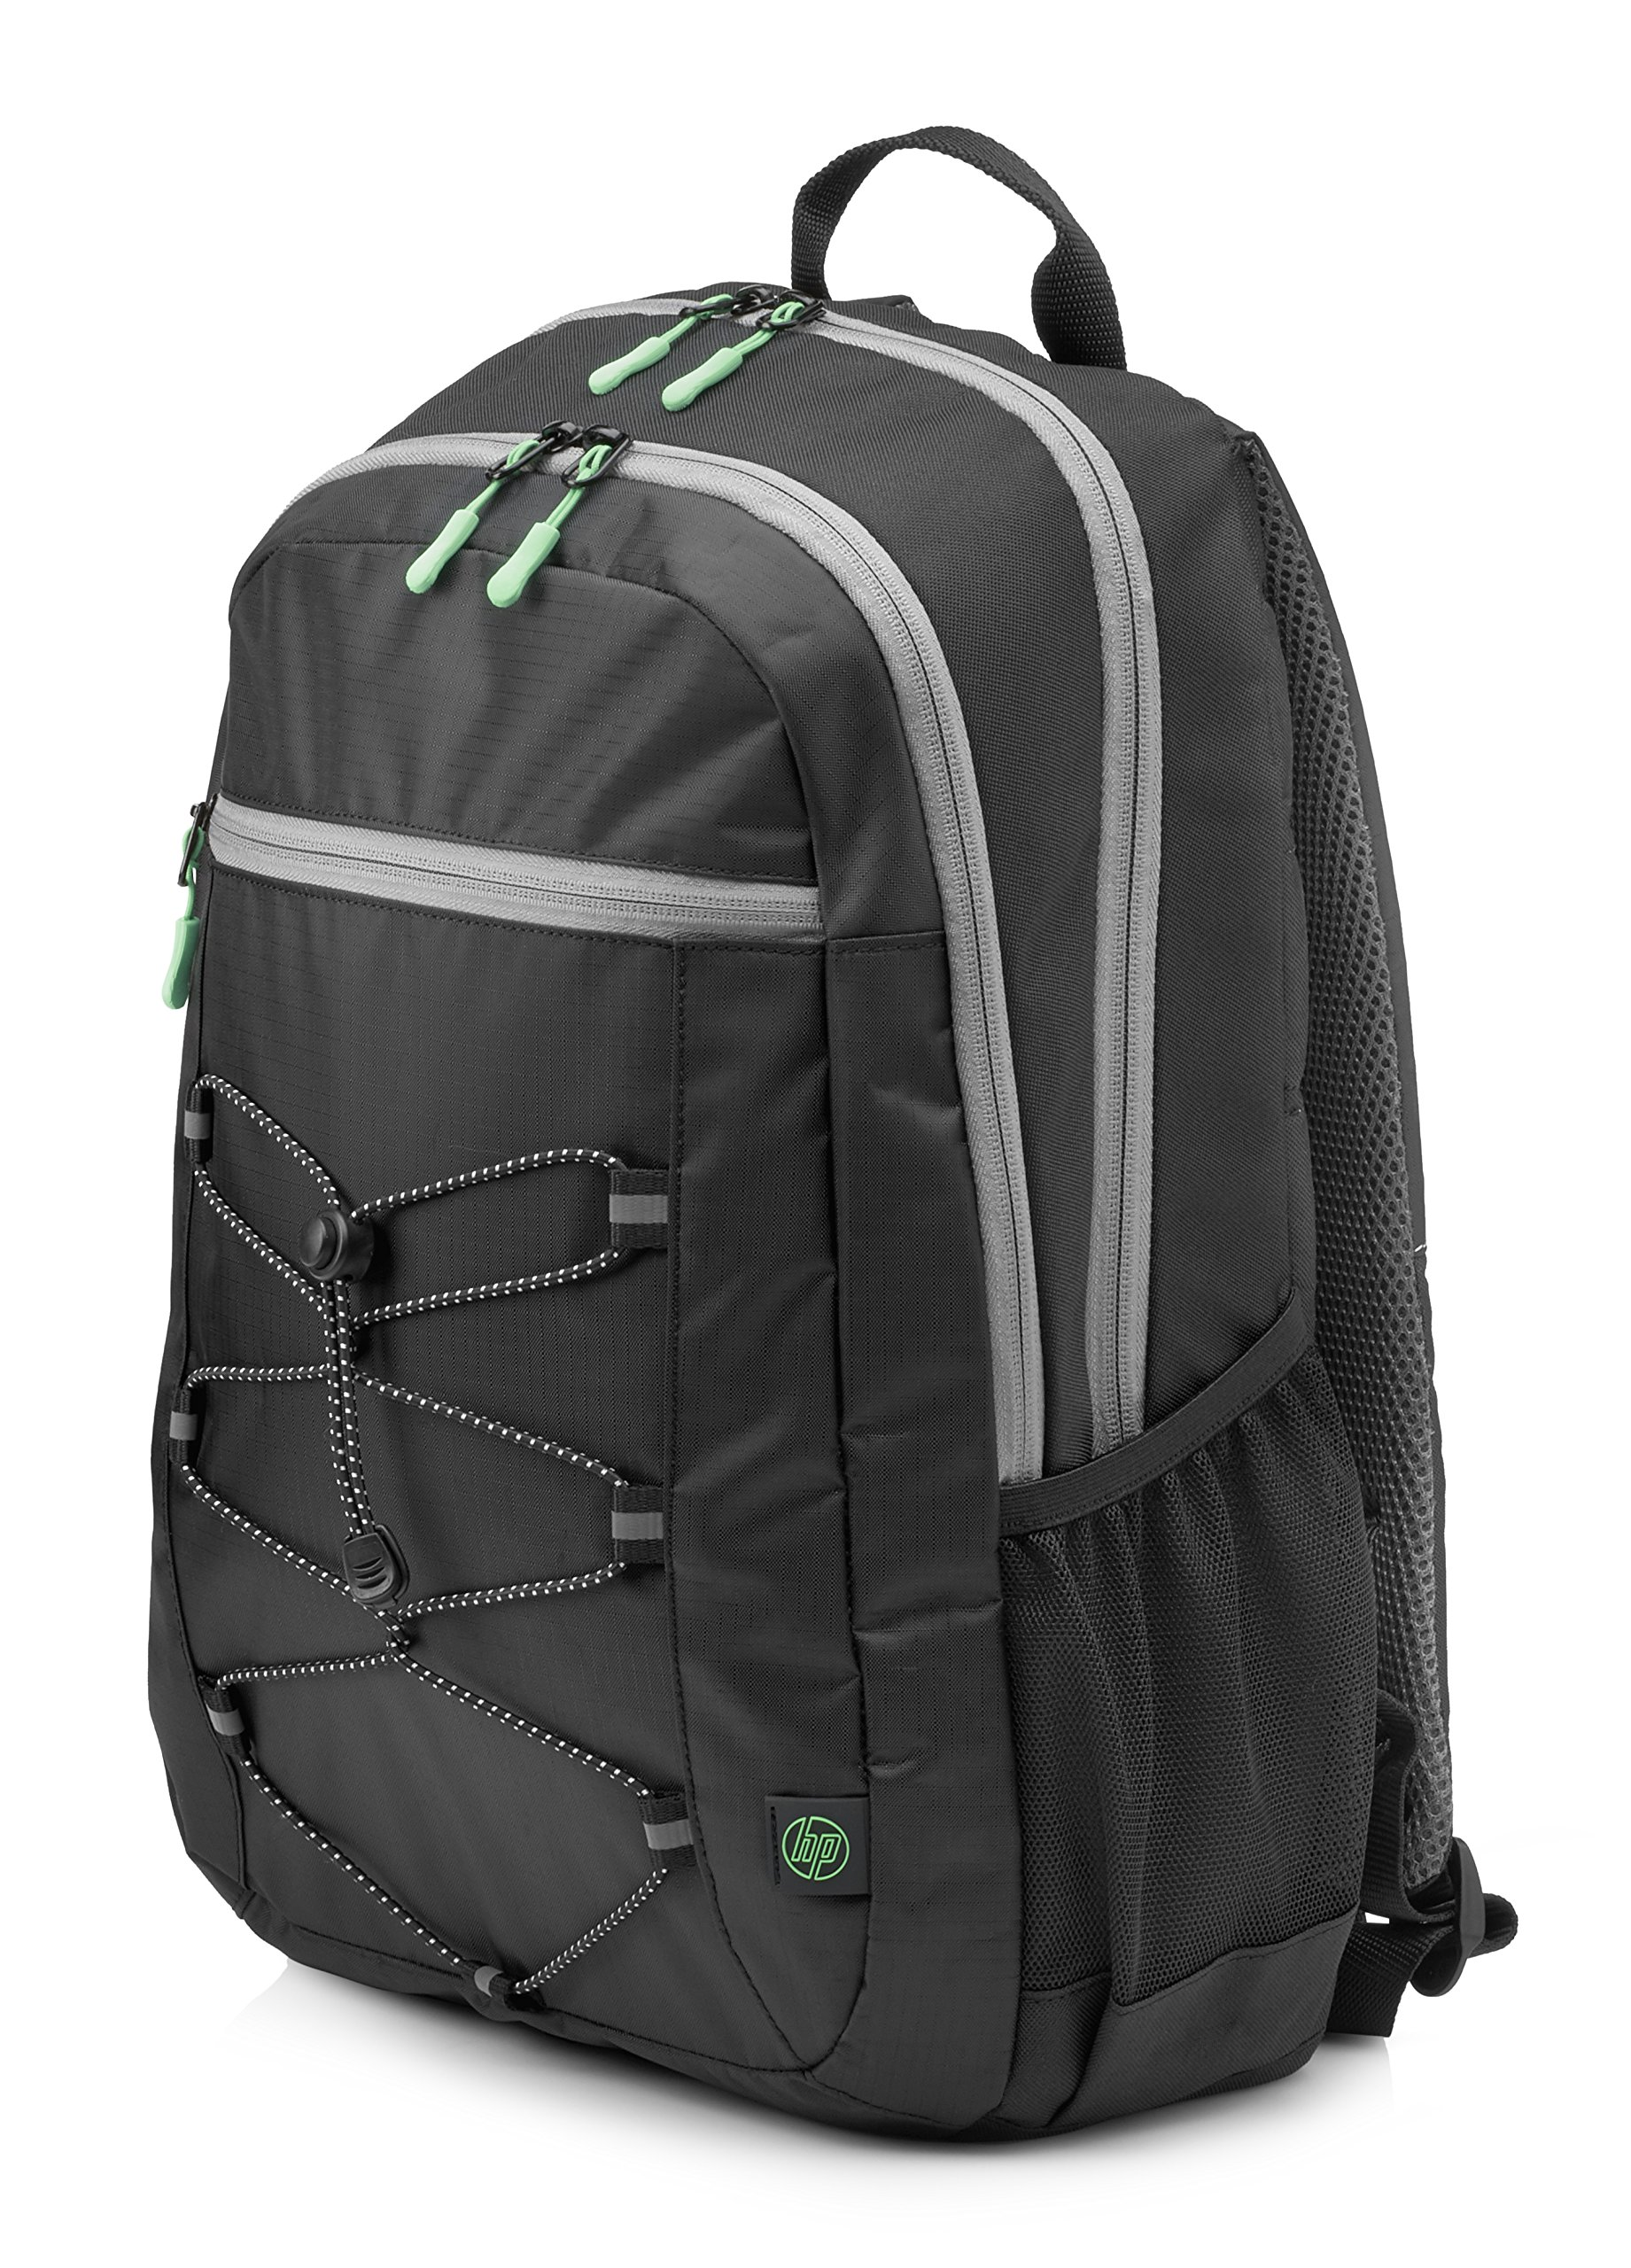 HP 15 inch Laptop Sport Backpack